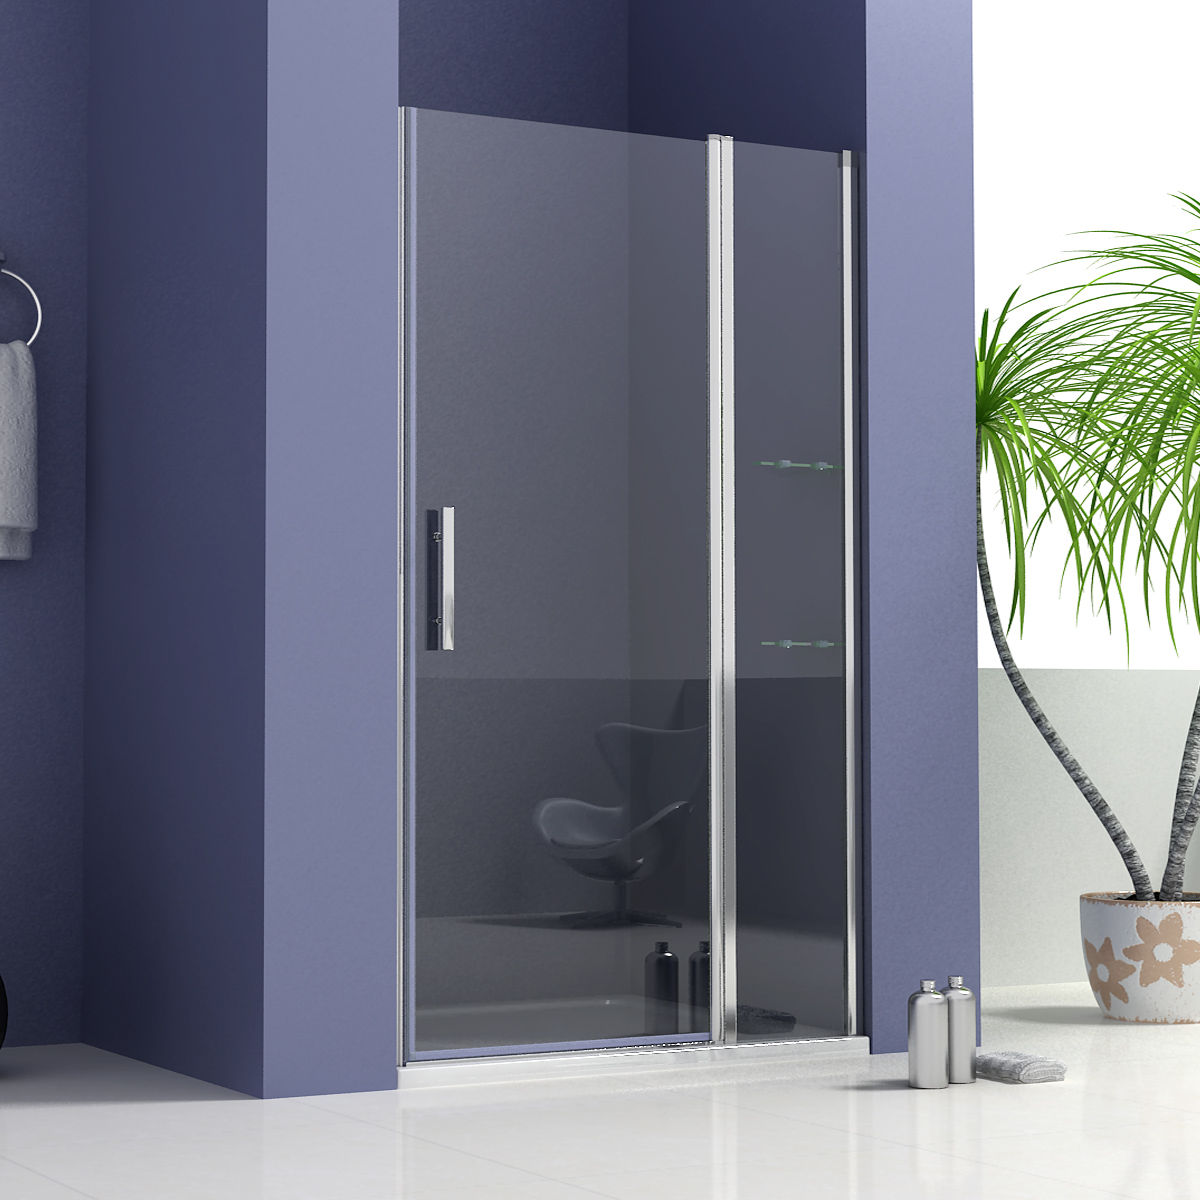 Details About Frameless Shower Enclosure Pivot Door Side Panel And Tray 700 1000 1200mm